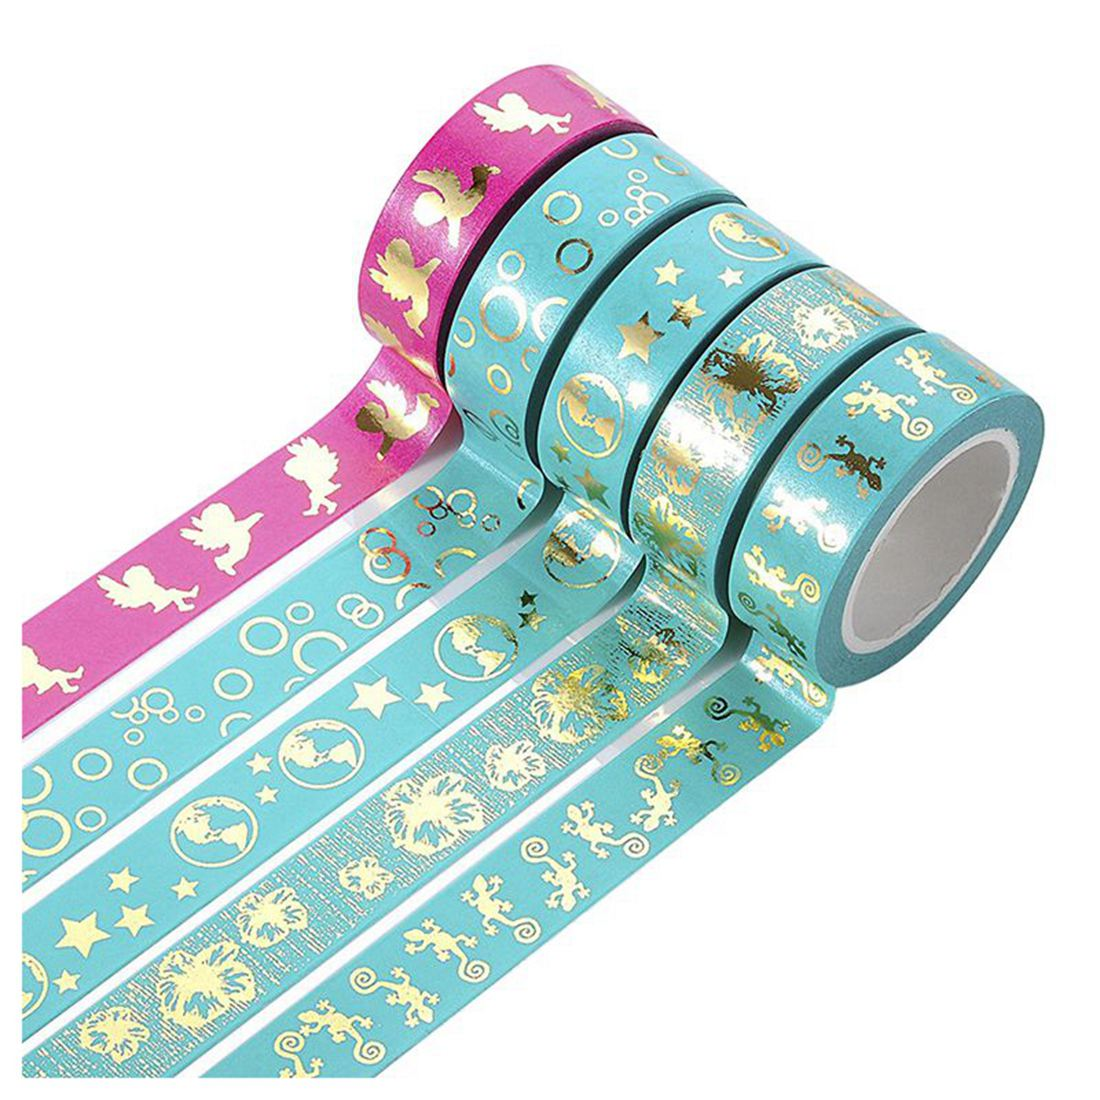 Affordable Decorative DIY Tape Washi Sticky Paper Foil Masking Adhesive Washi Tape For Scrapbooking DIY Decoration 5xRoll, 9cmx5m creative life edition washi paper tape 9cm delicacy small objects decorative tape